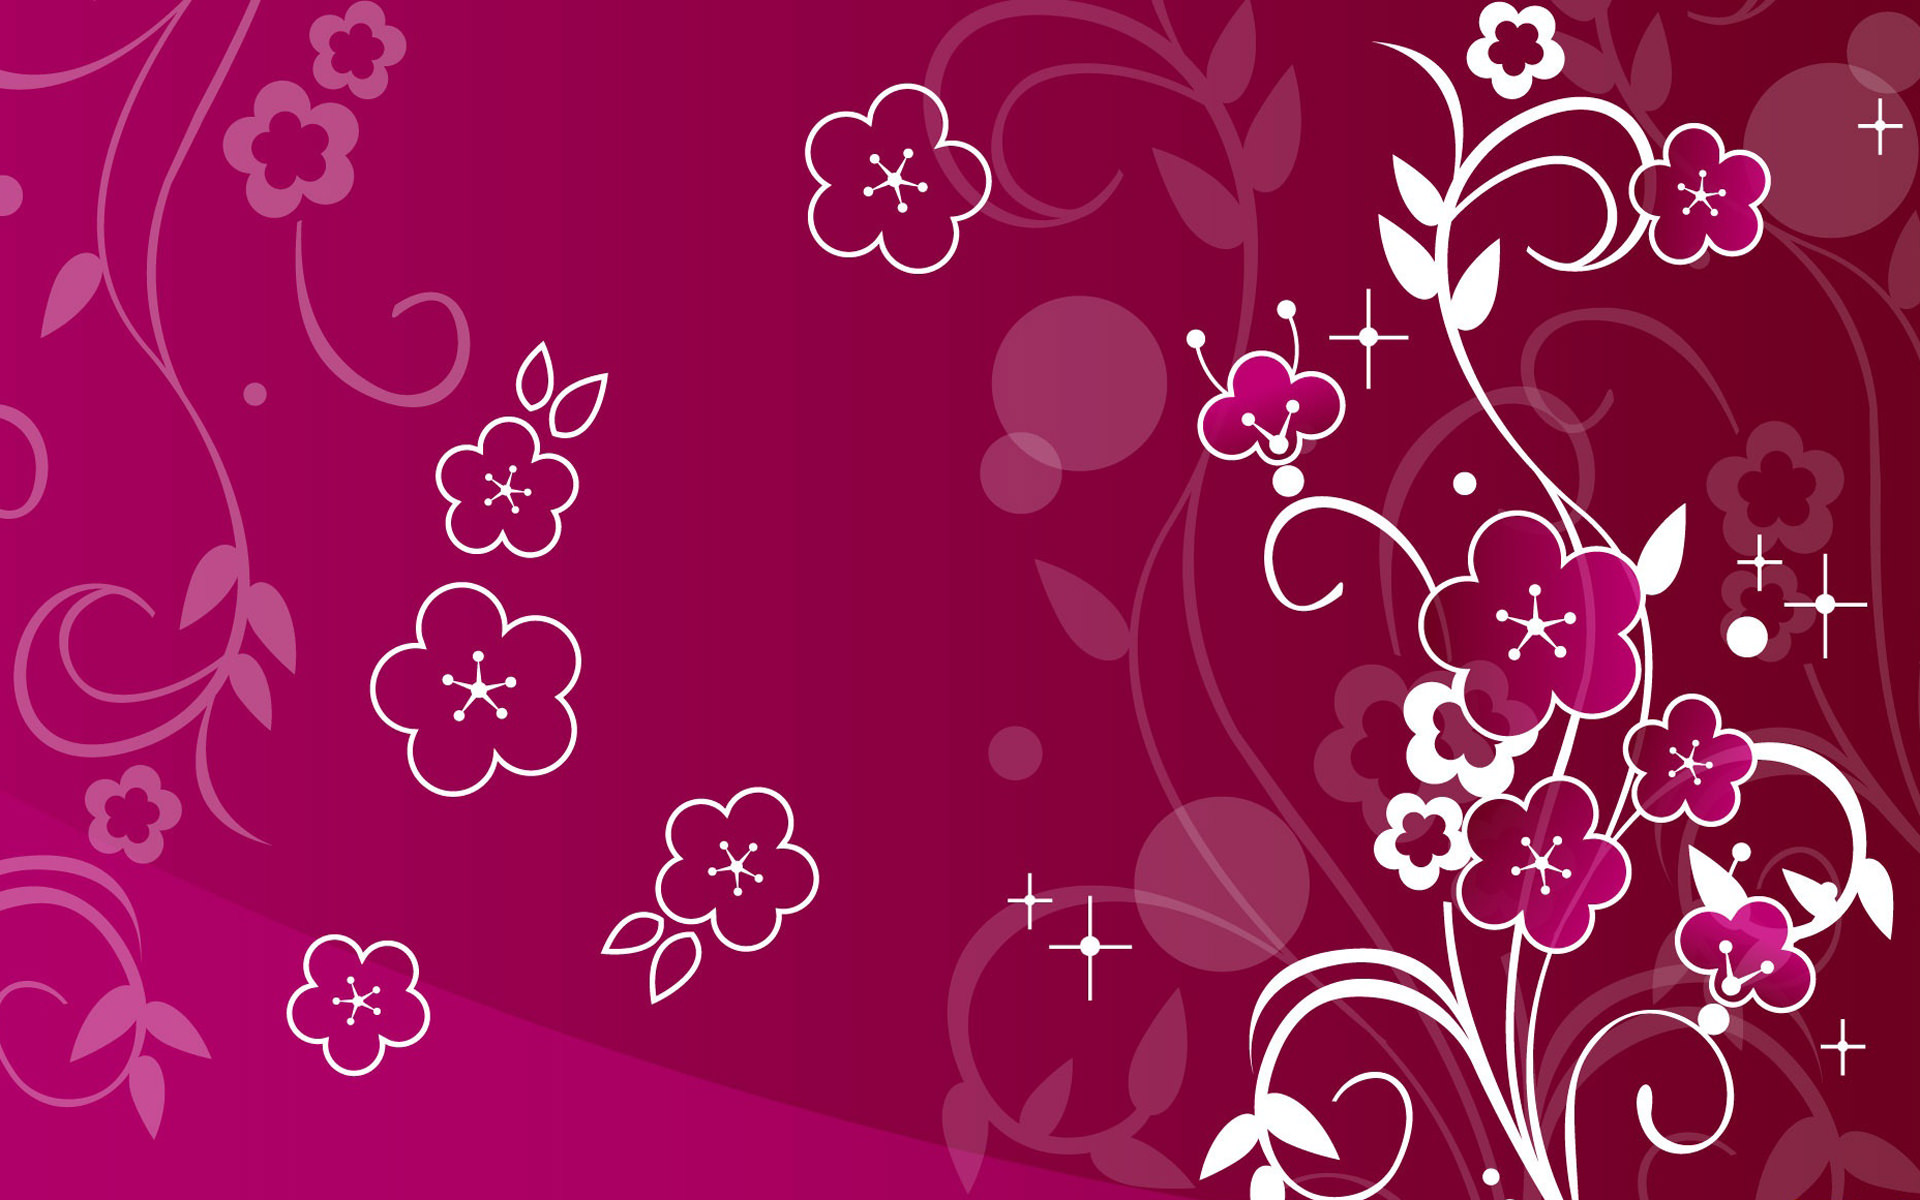 21 Girly Wallpapers Pink Backgrounds Images Pictures